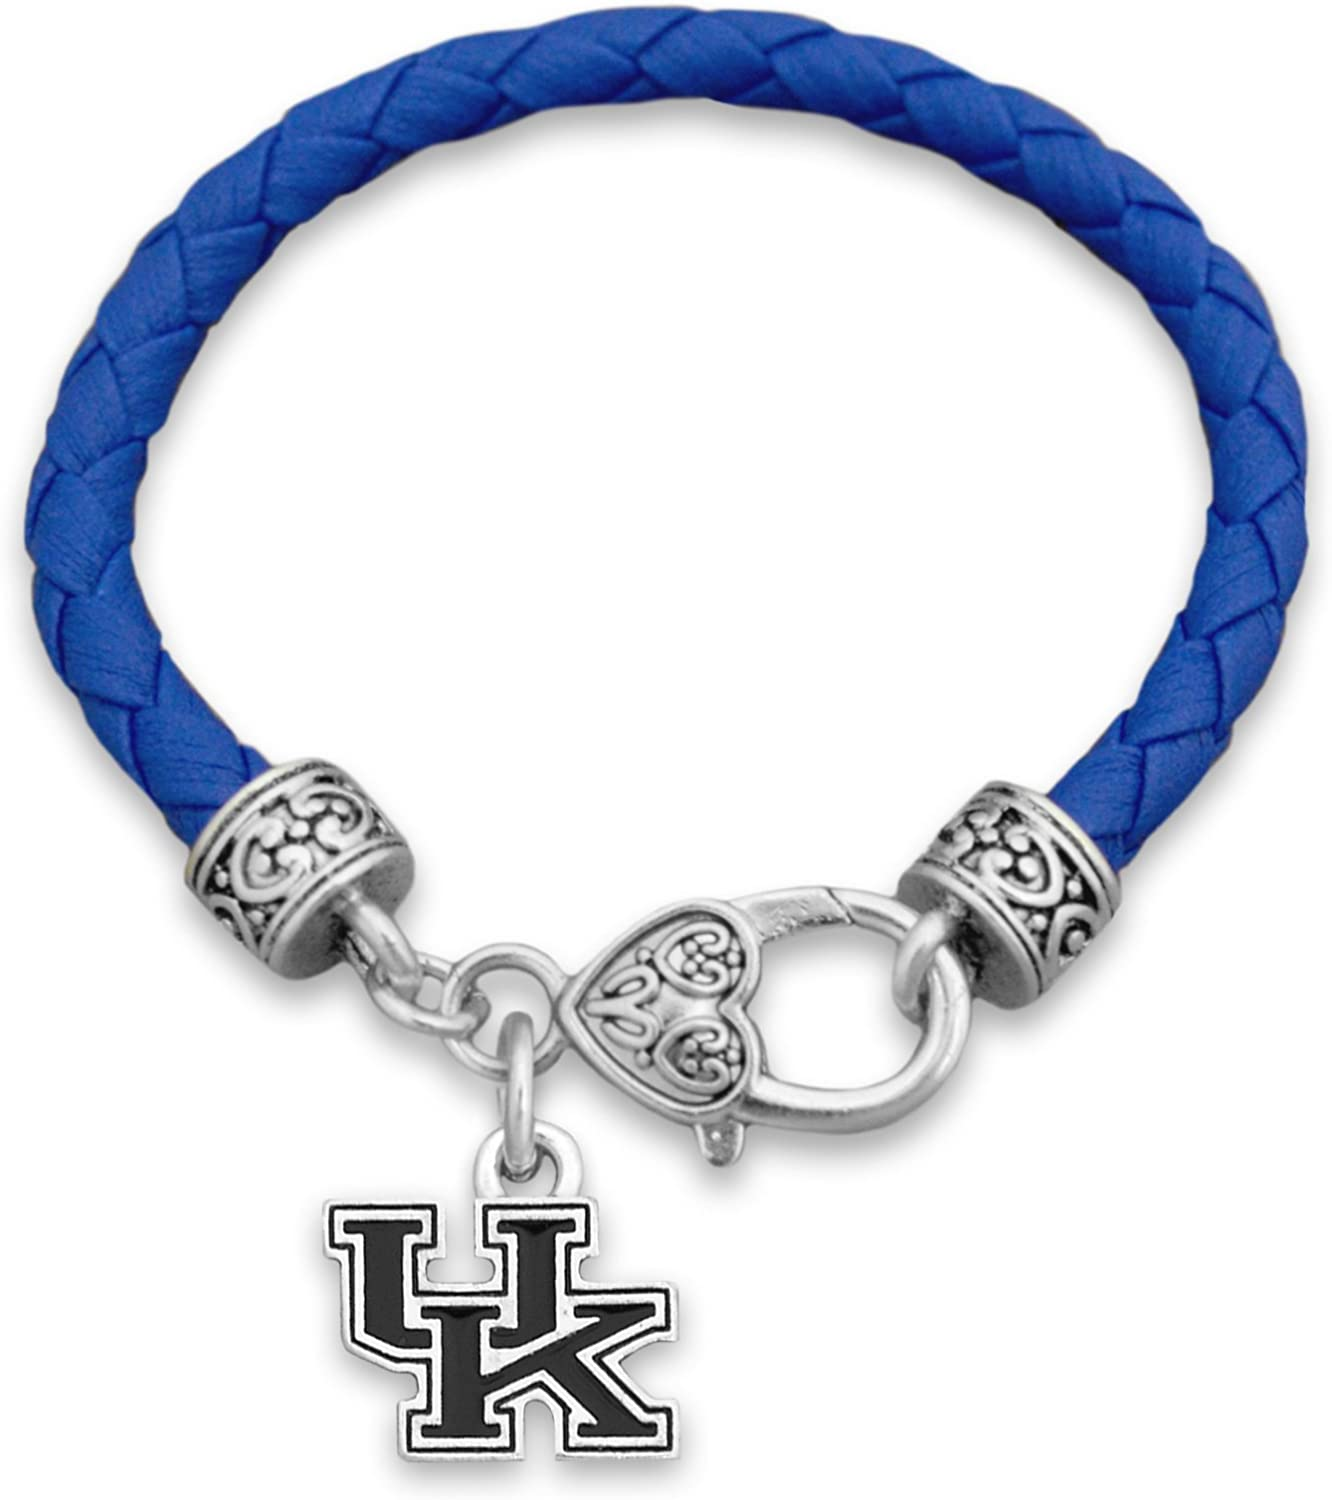 Kentucky Wildcats Leather Bracelet with Round Logo and Lobster Clasp